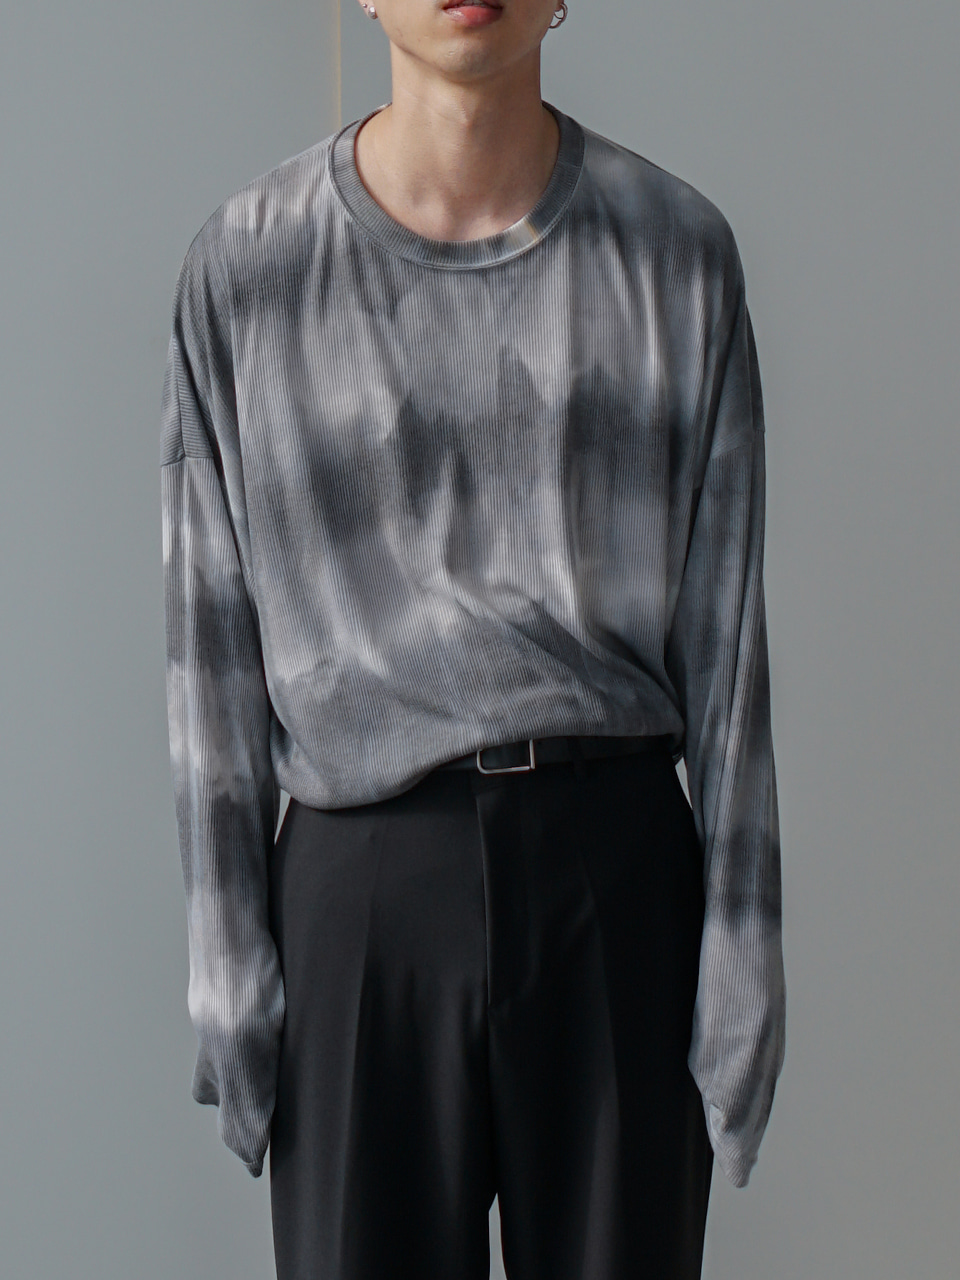 Don Oversized Tie-Dye Tee (2color)